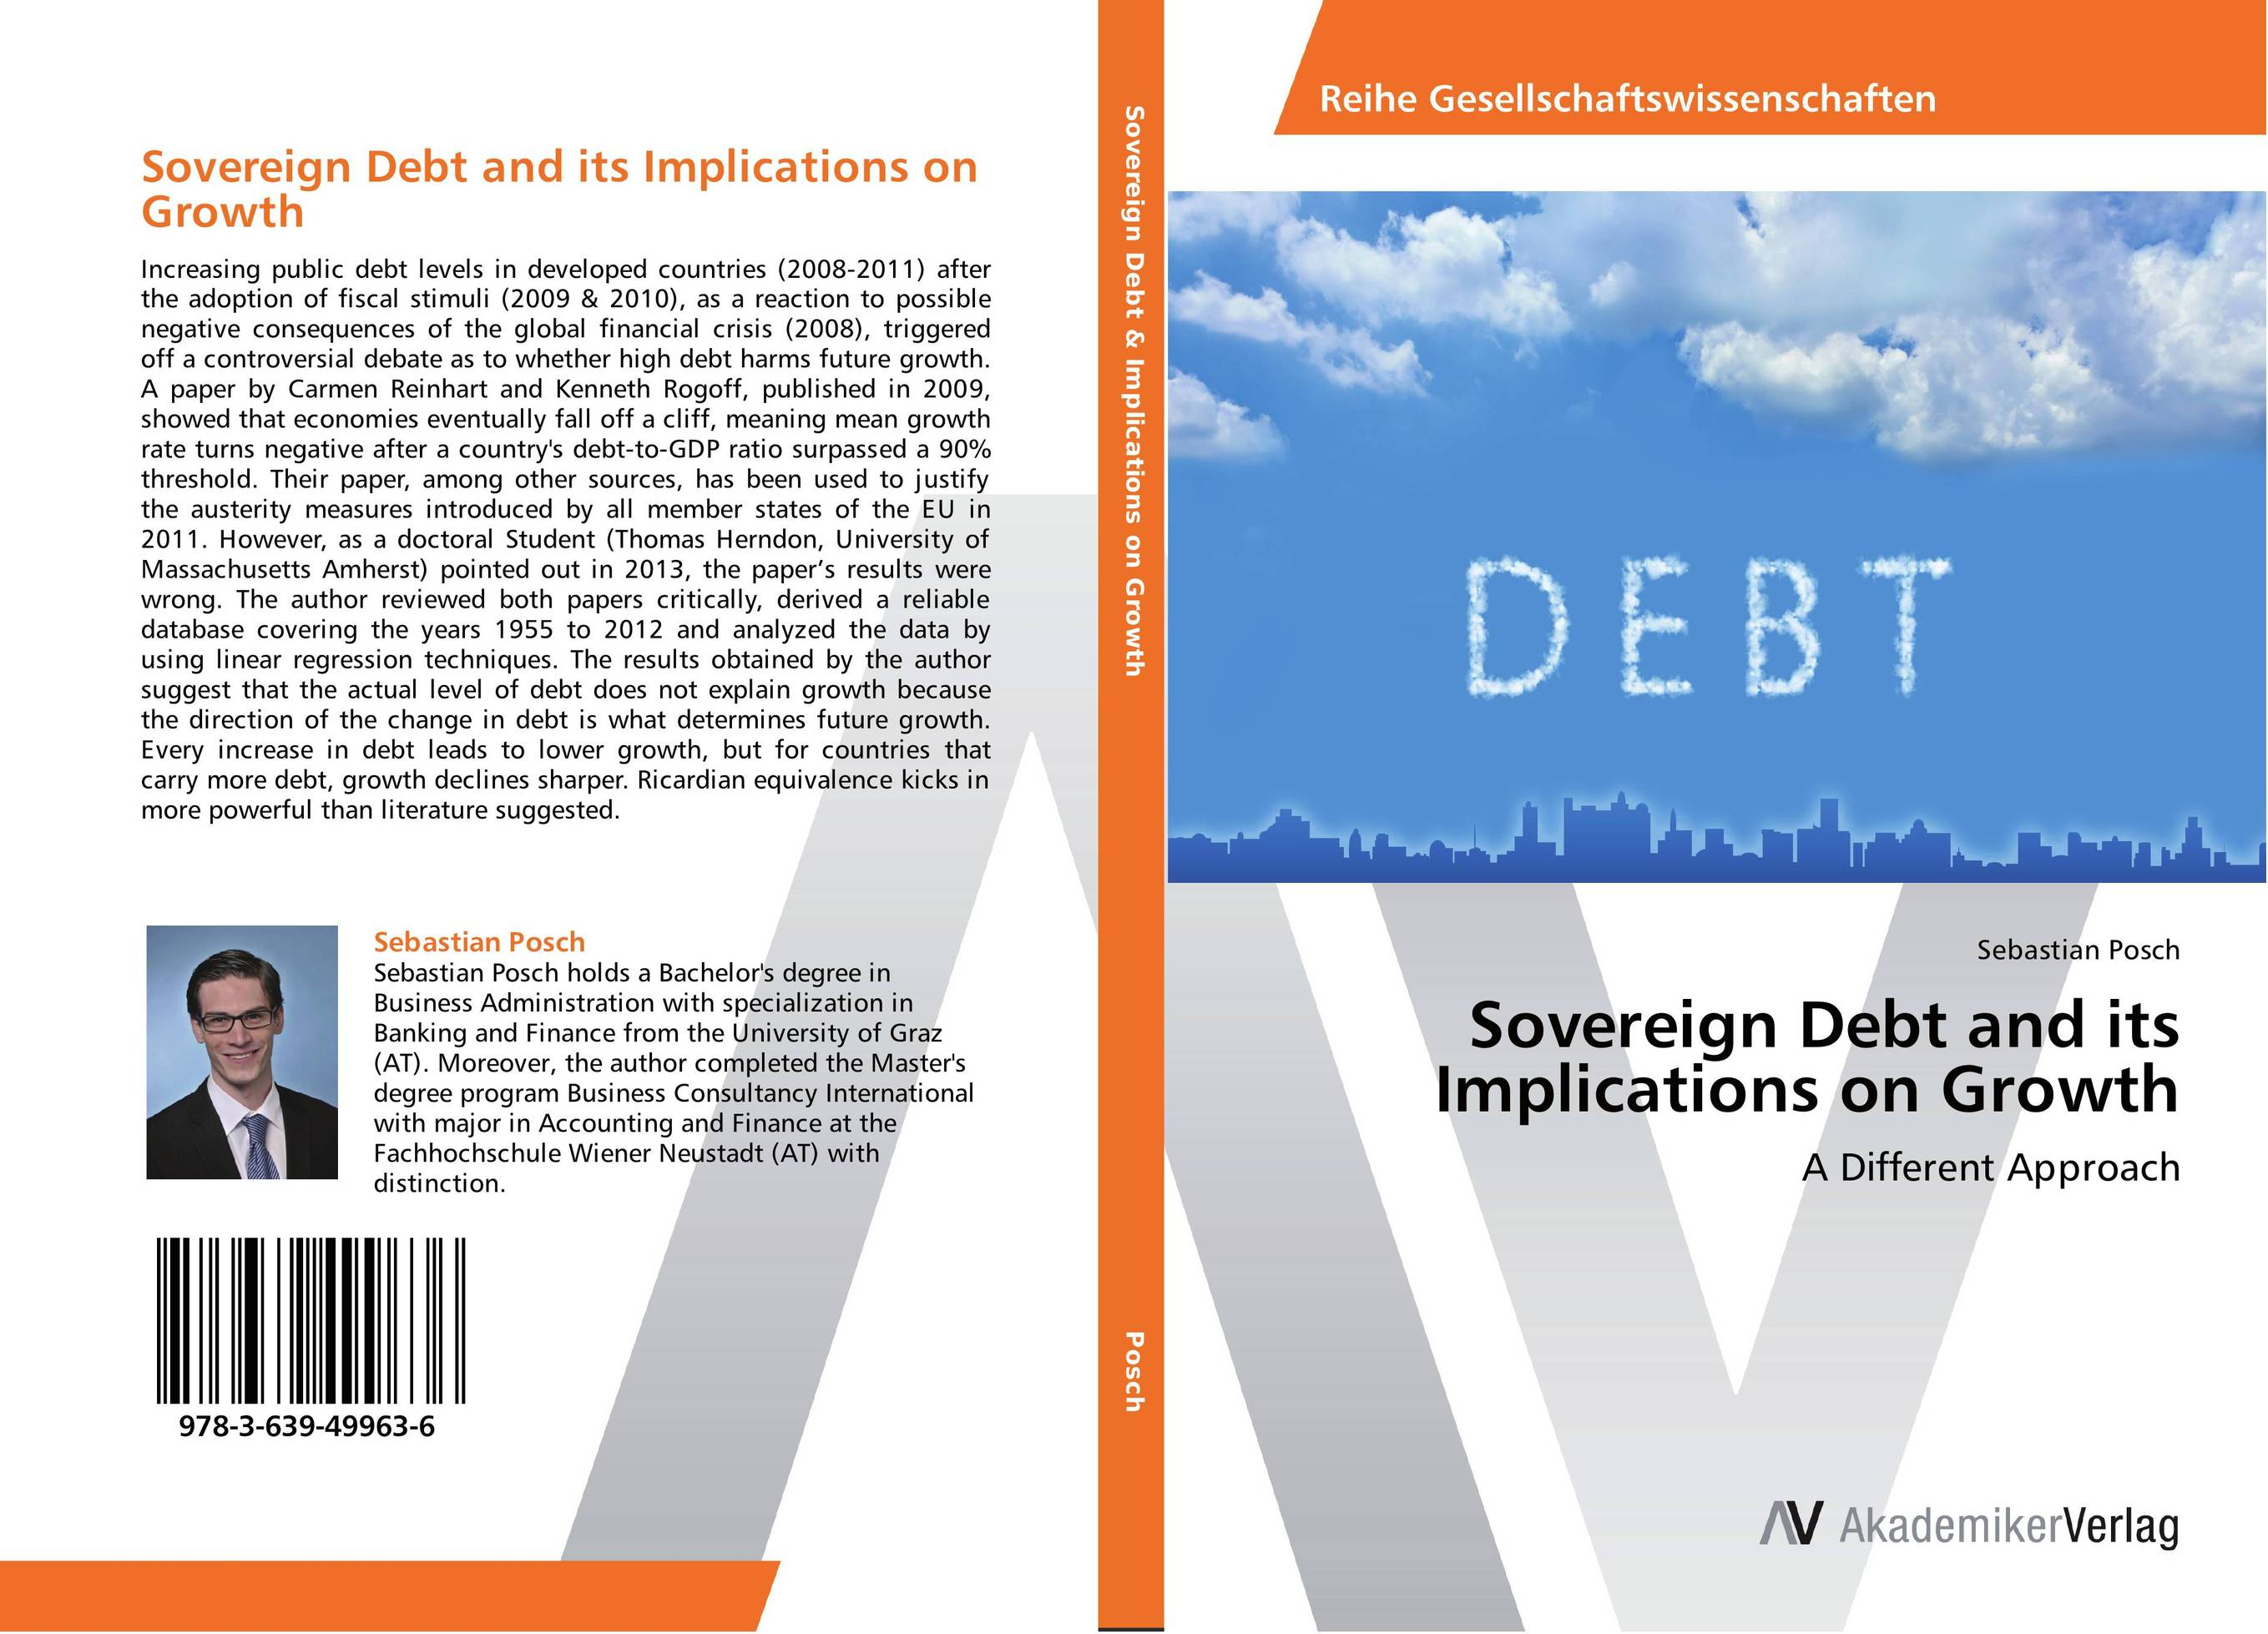 Sovereign Debt and its Implications on Growth corporate debt pricing